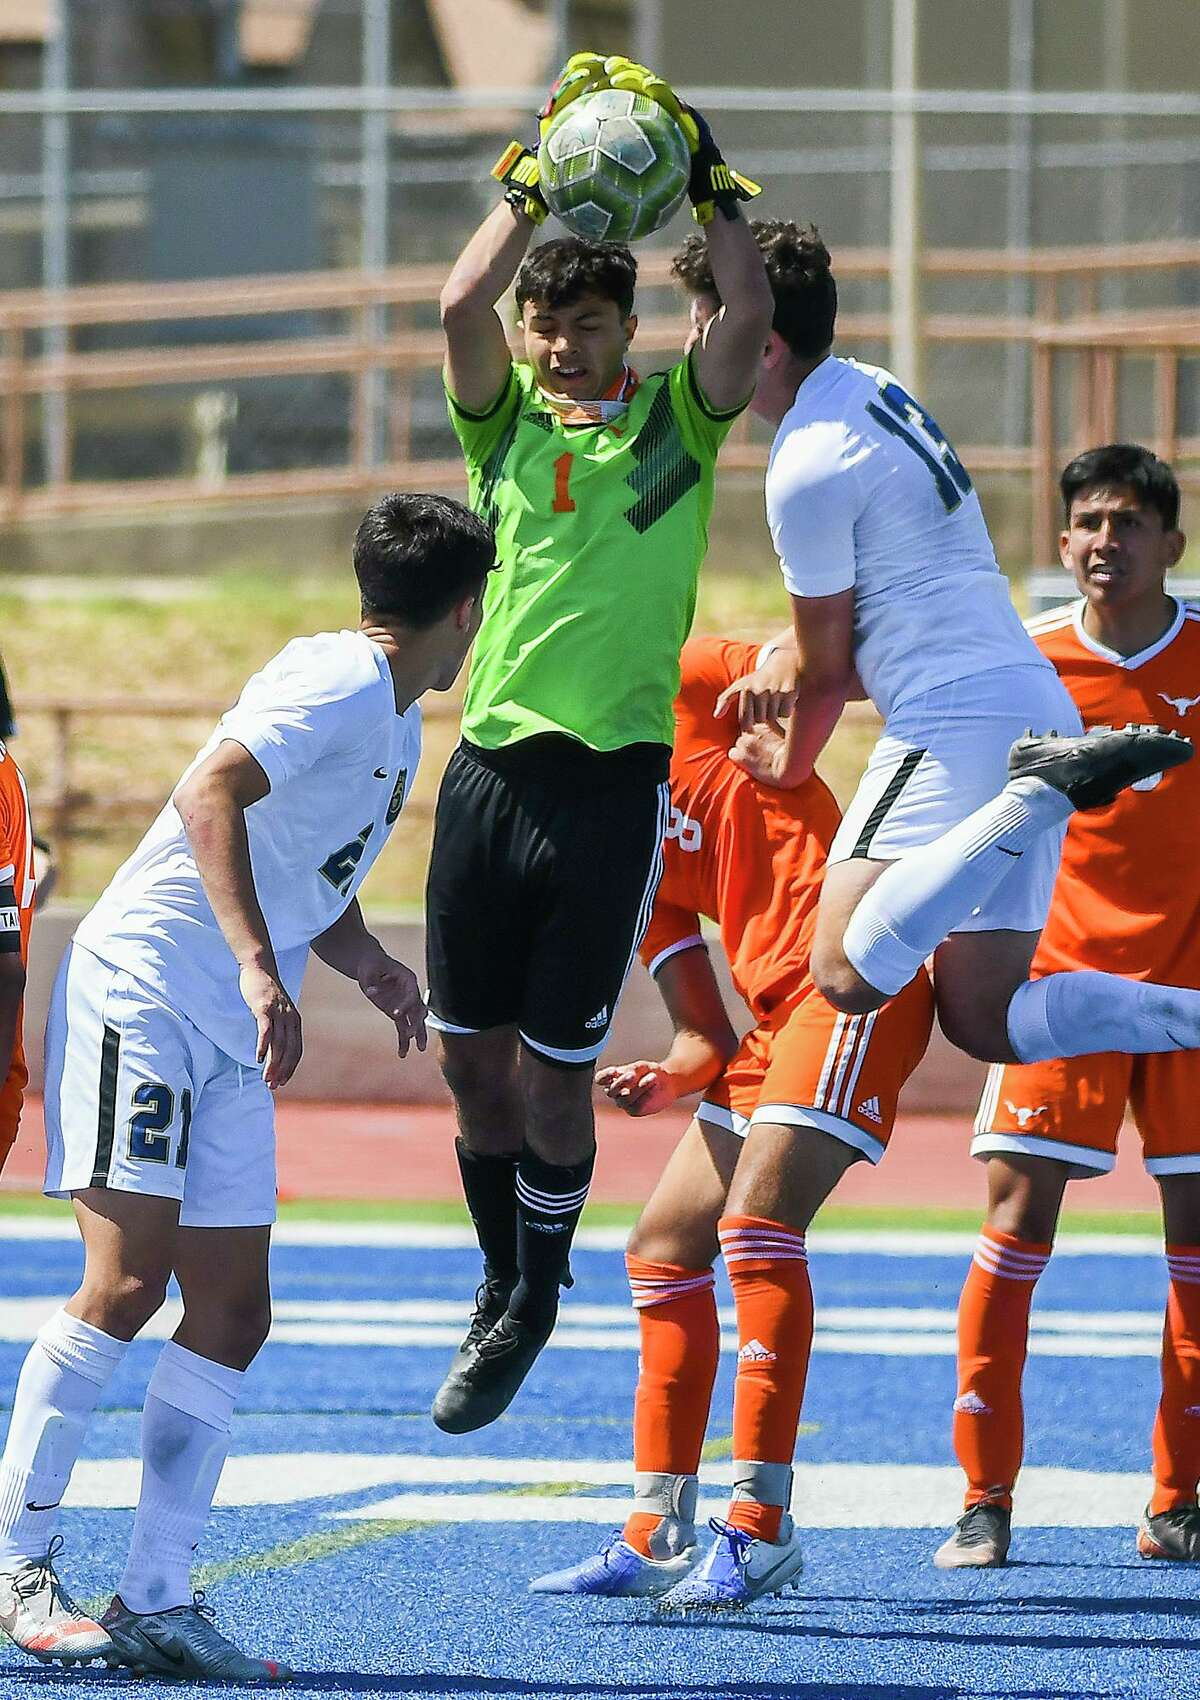 United goalkeeper Tito Ortiz allowed only one goal on Saturday.